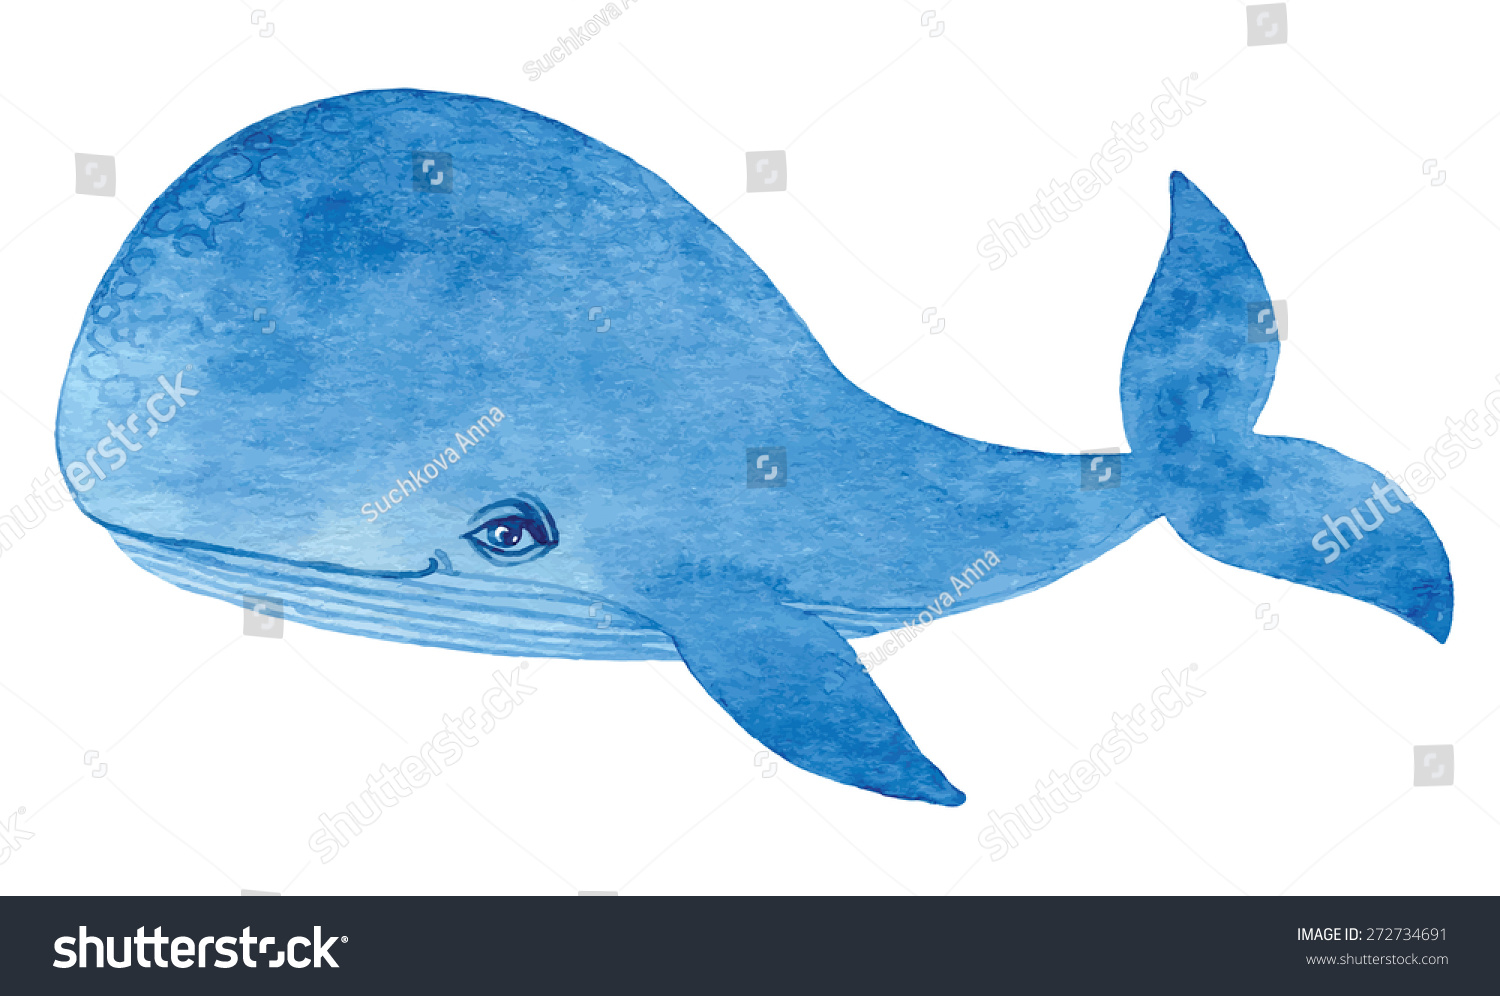 Uncategorized Blue Whale Drawing blue whale watercolor cartoon hand drawing stock vector 272734691 paint